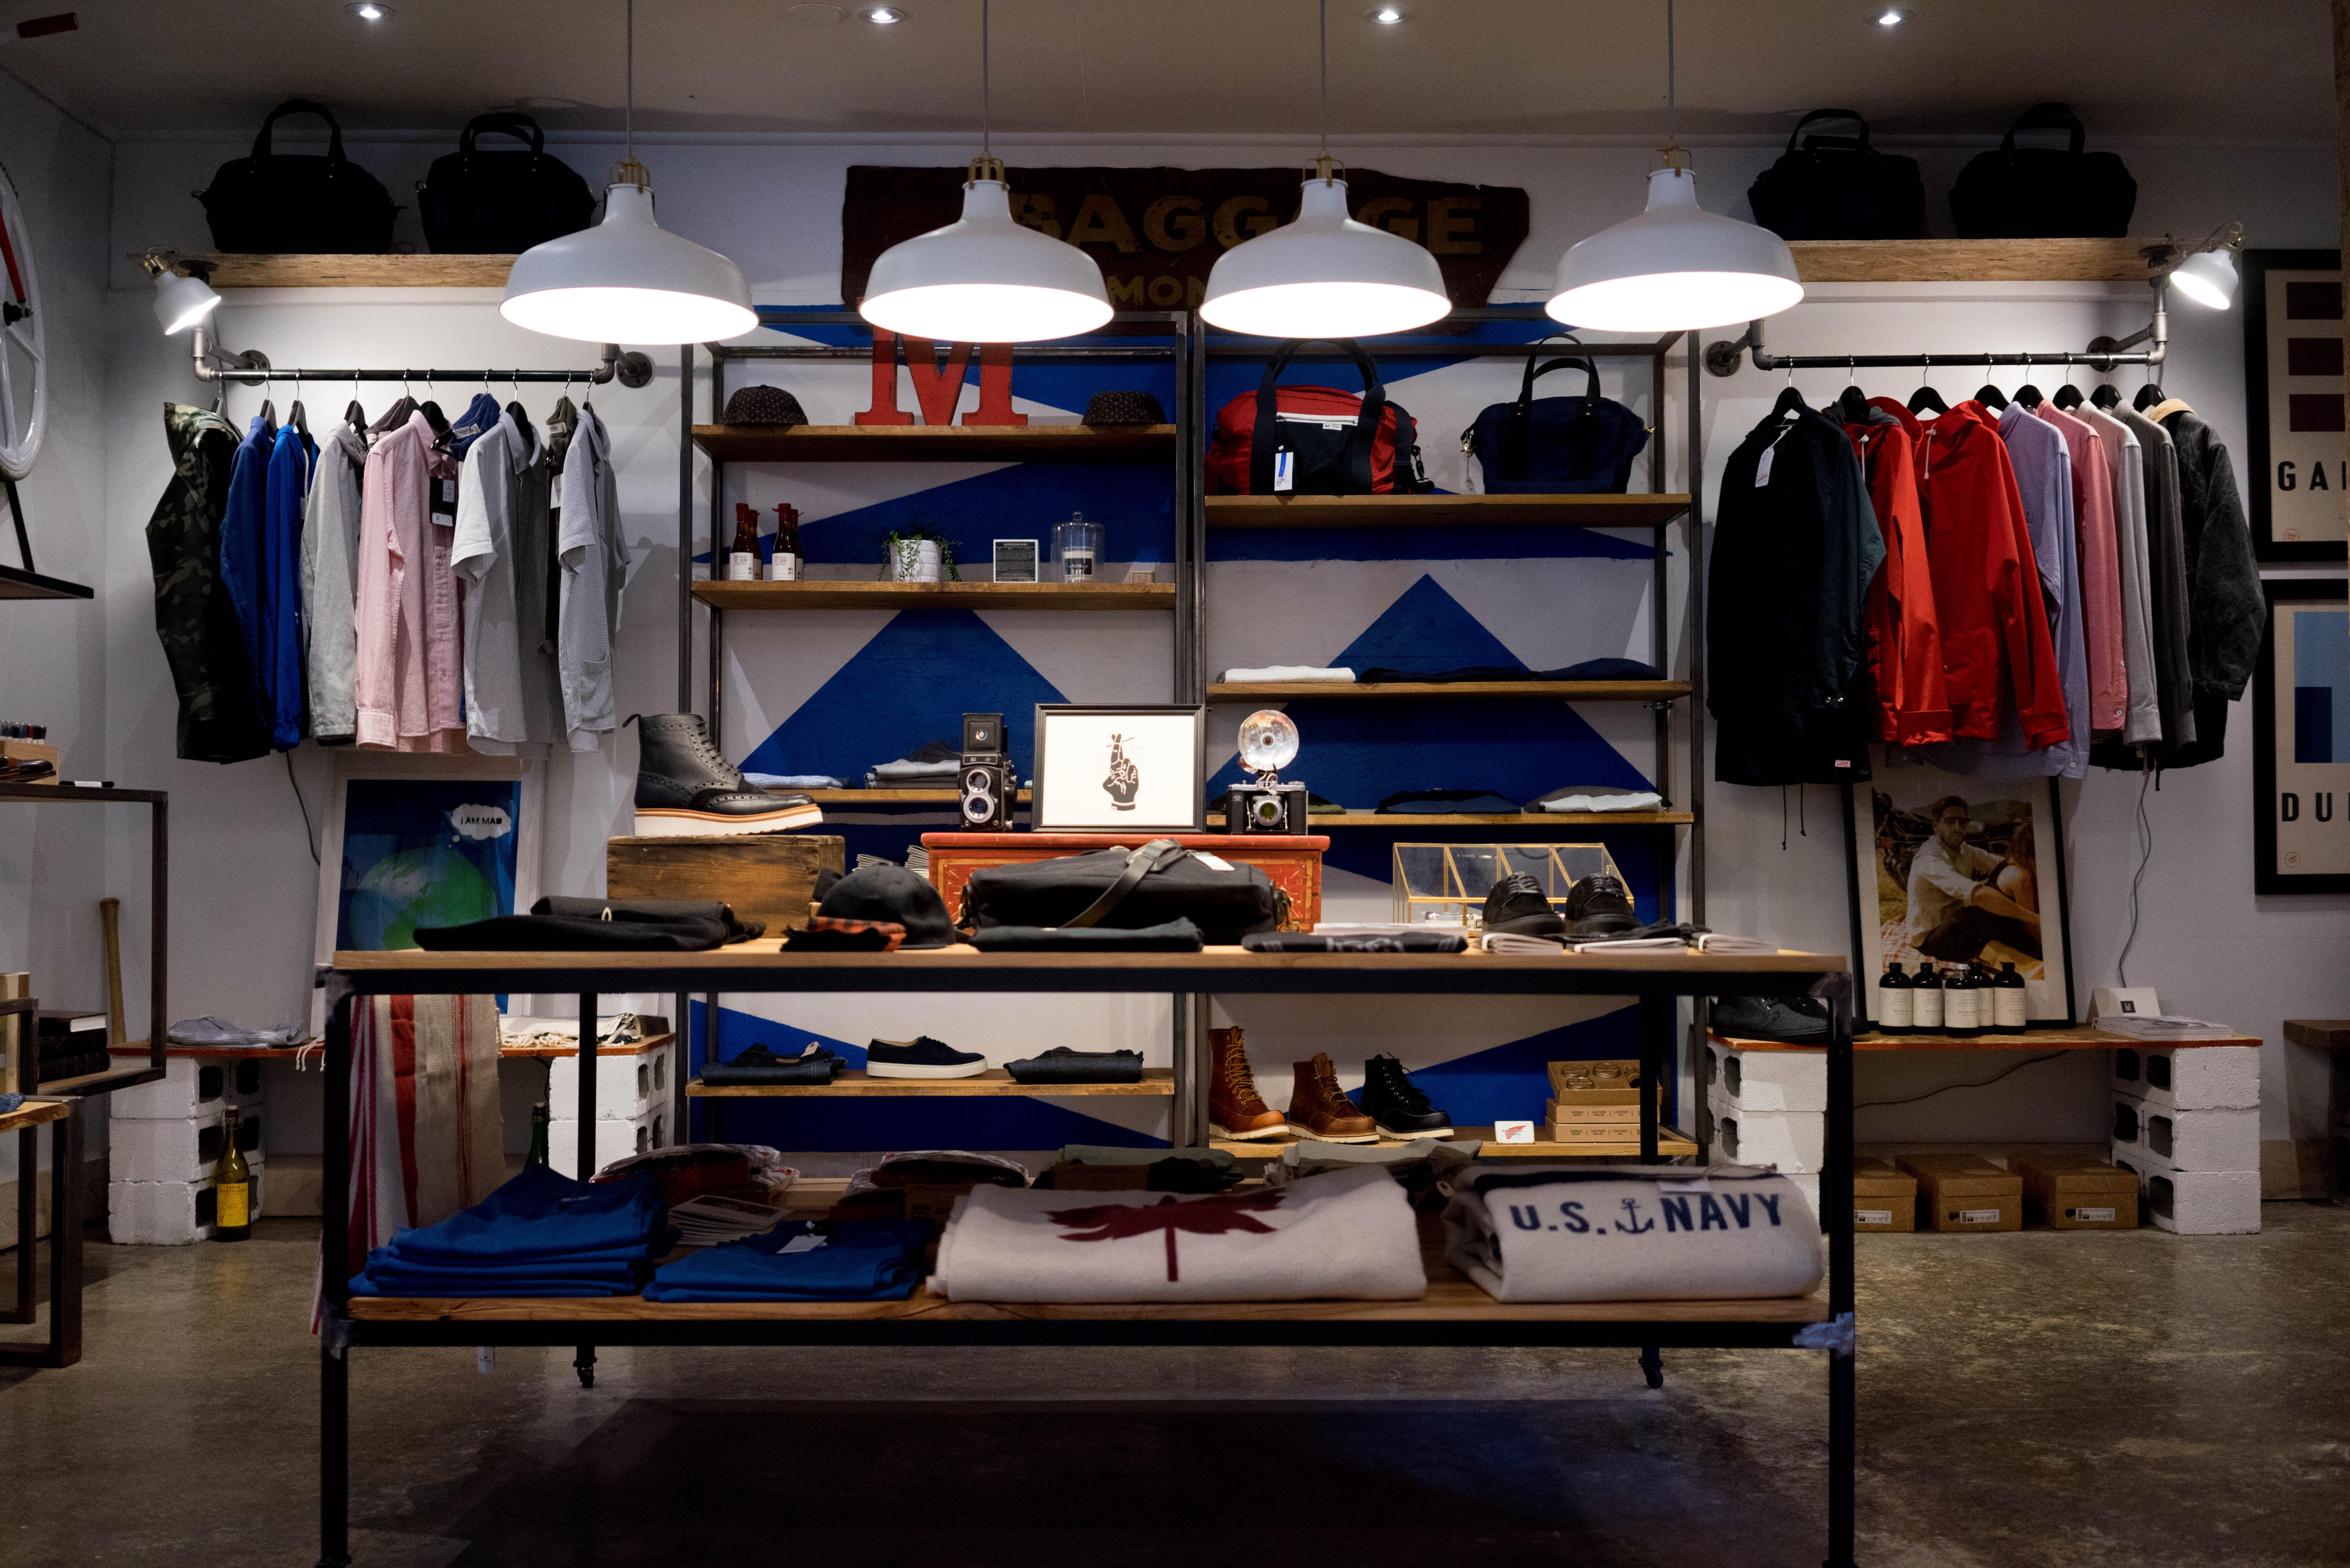 Clothes and accessories in an apparel store